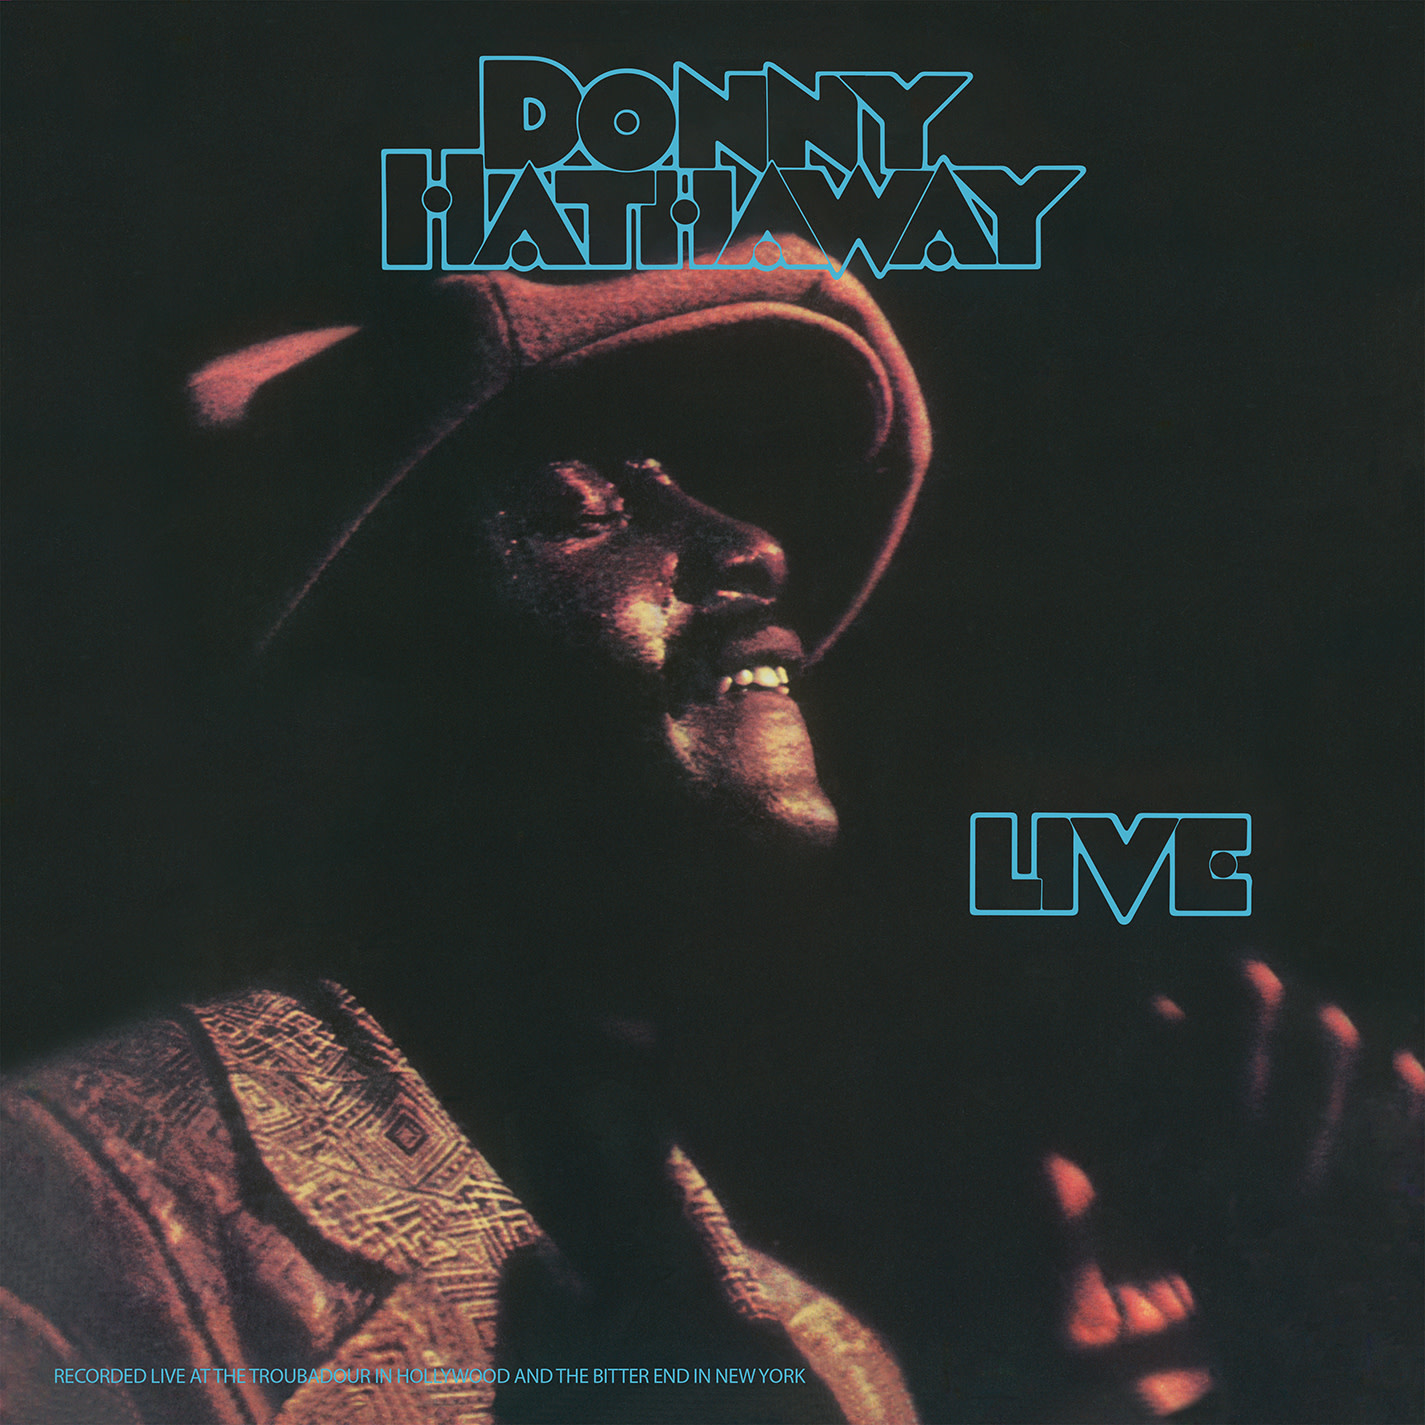 Donny Hathaway - Donny Hathaway Live